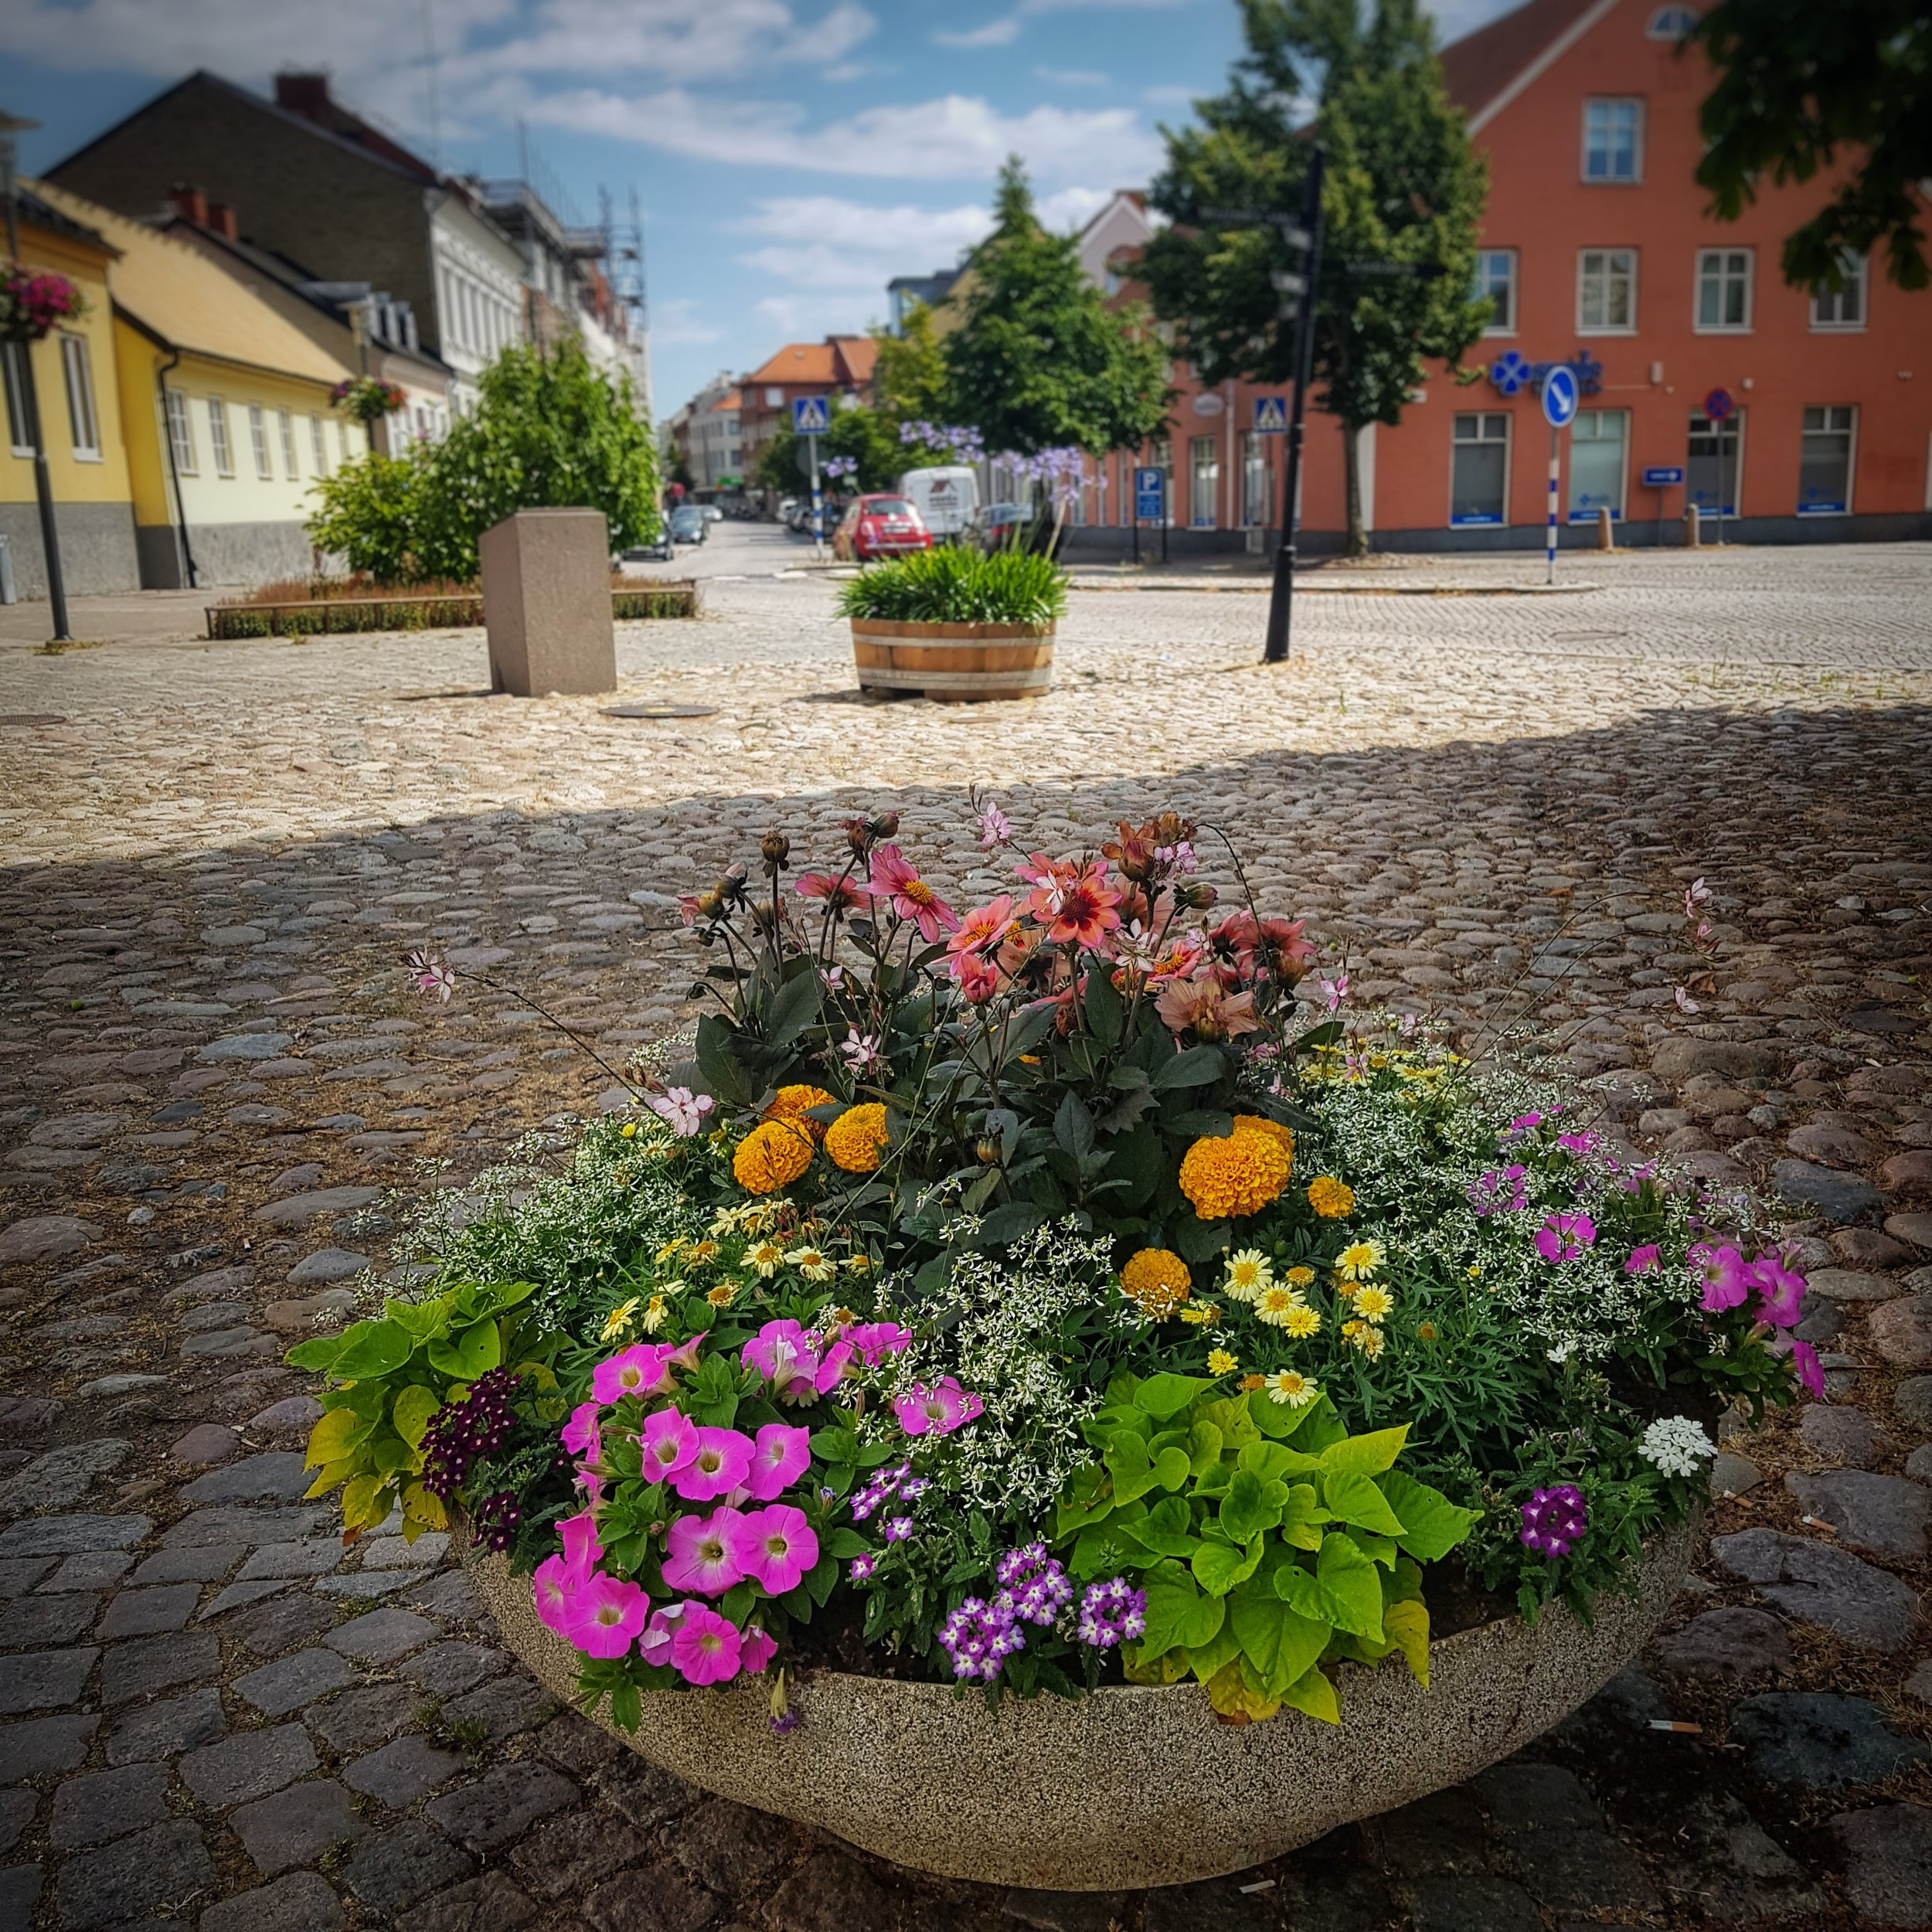 Day 188 - July 07: Flowers in a small town